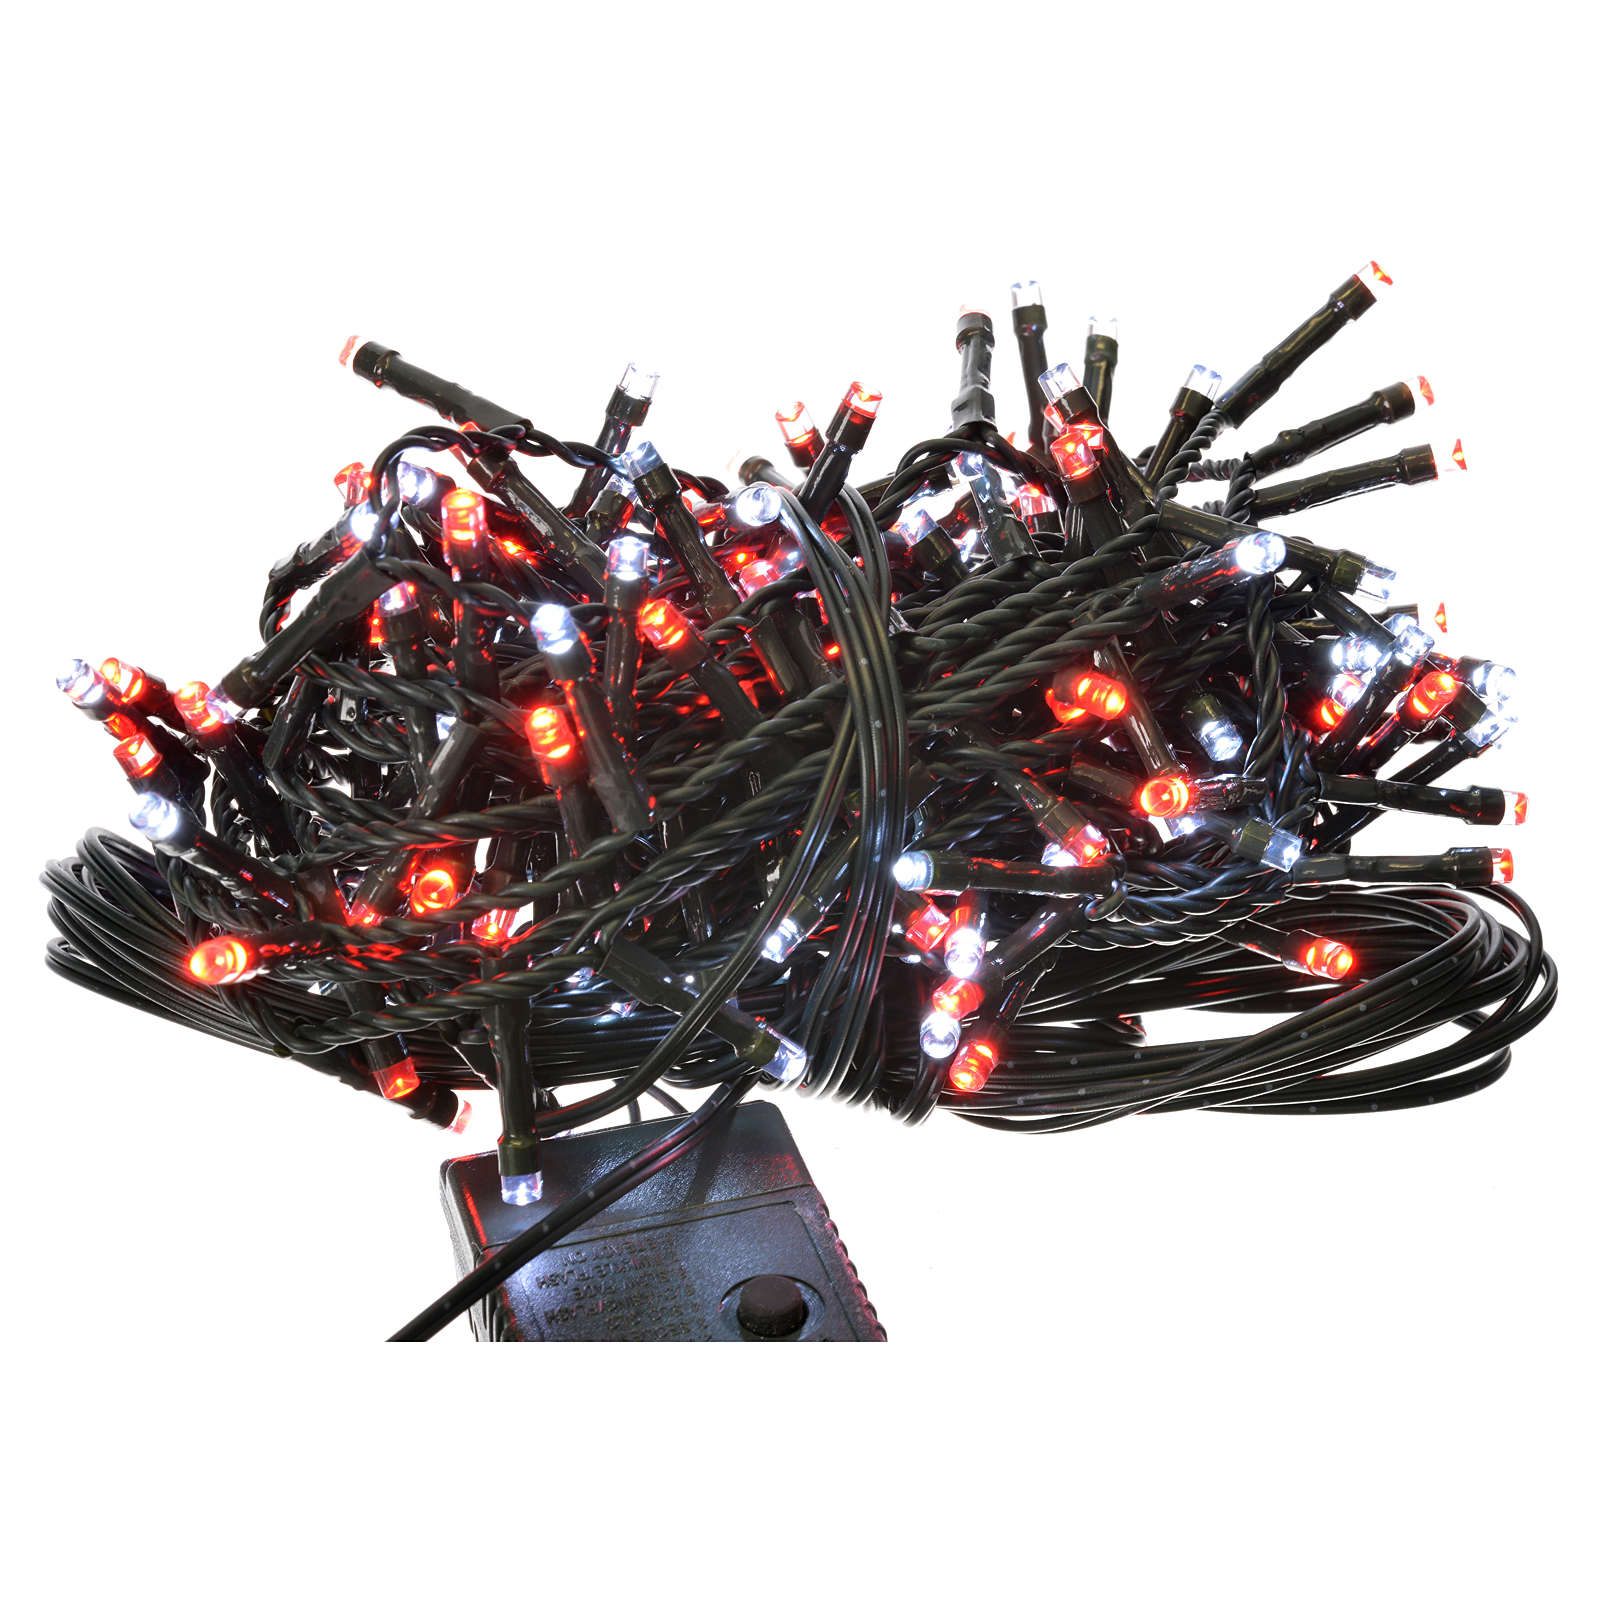 Fairy lights 180 LED, red and white, for outdoor/indoor use, programmable 3